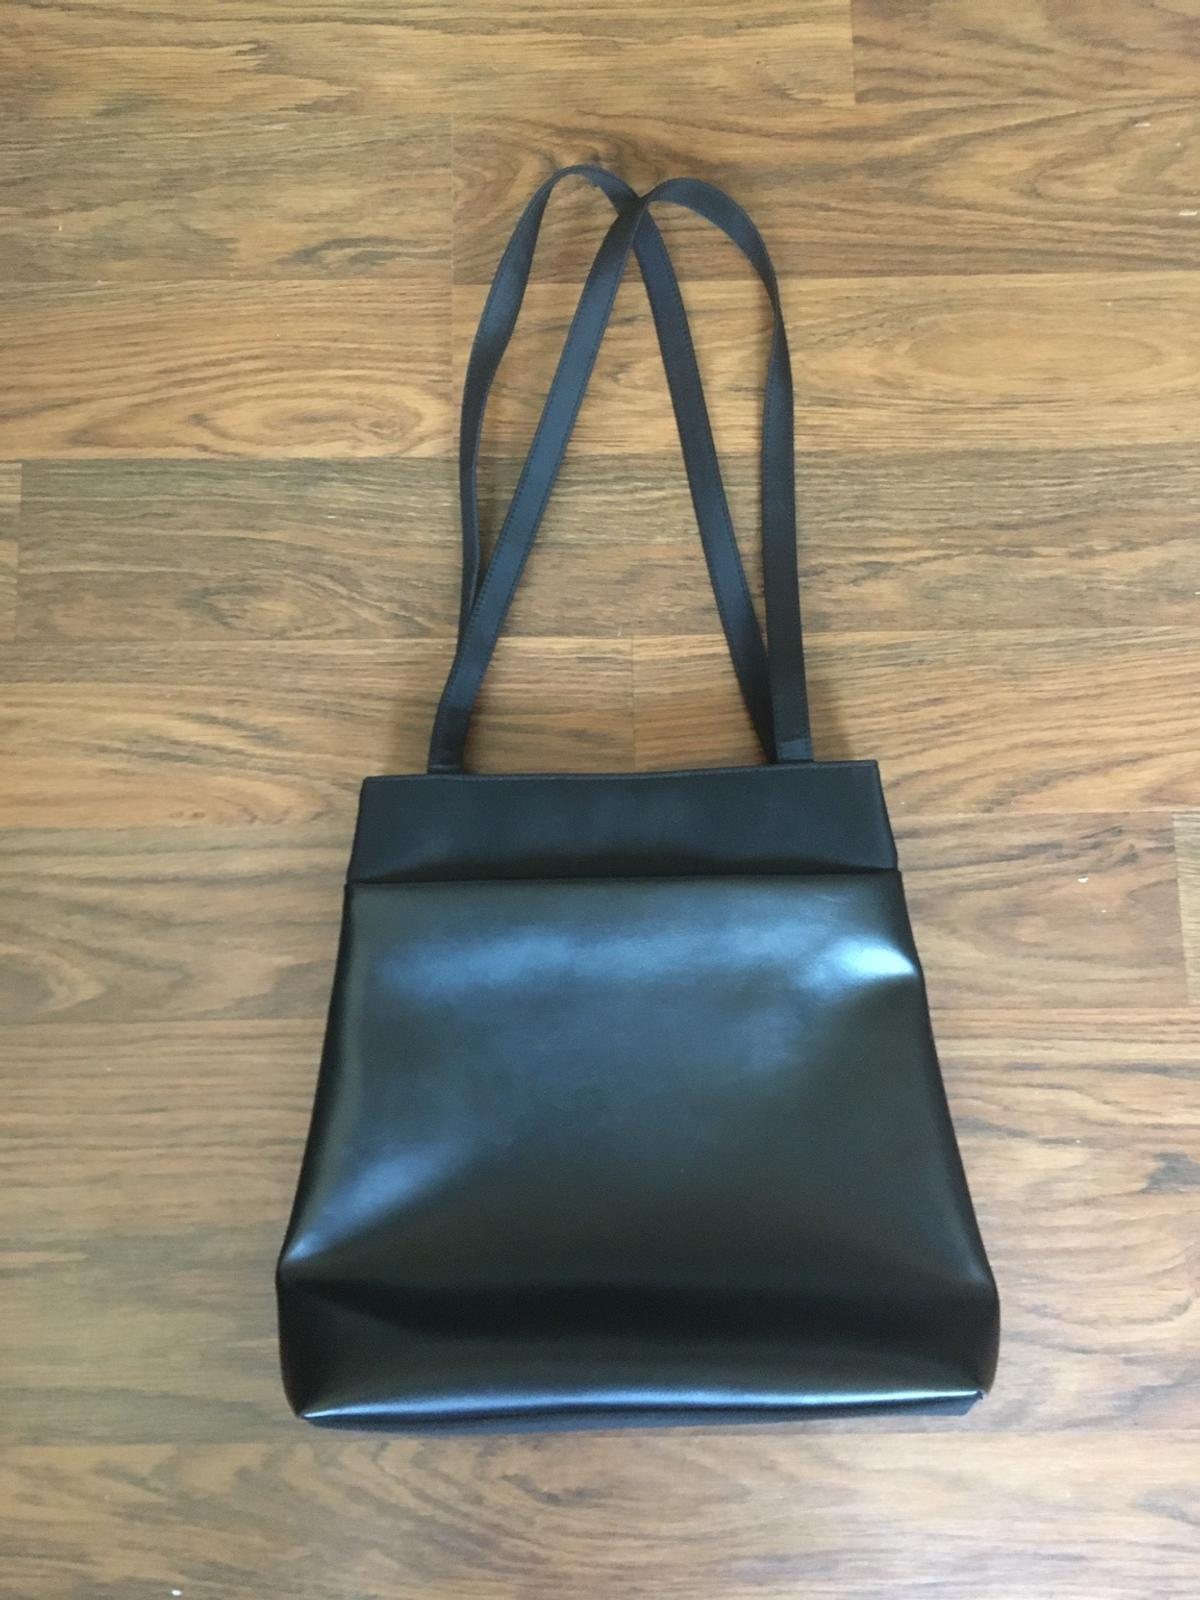 Handbag, very good condition